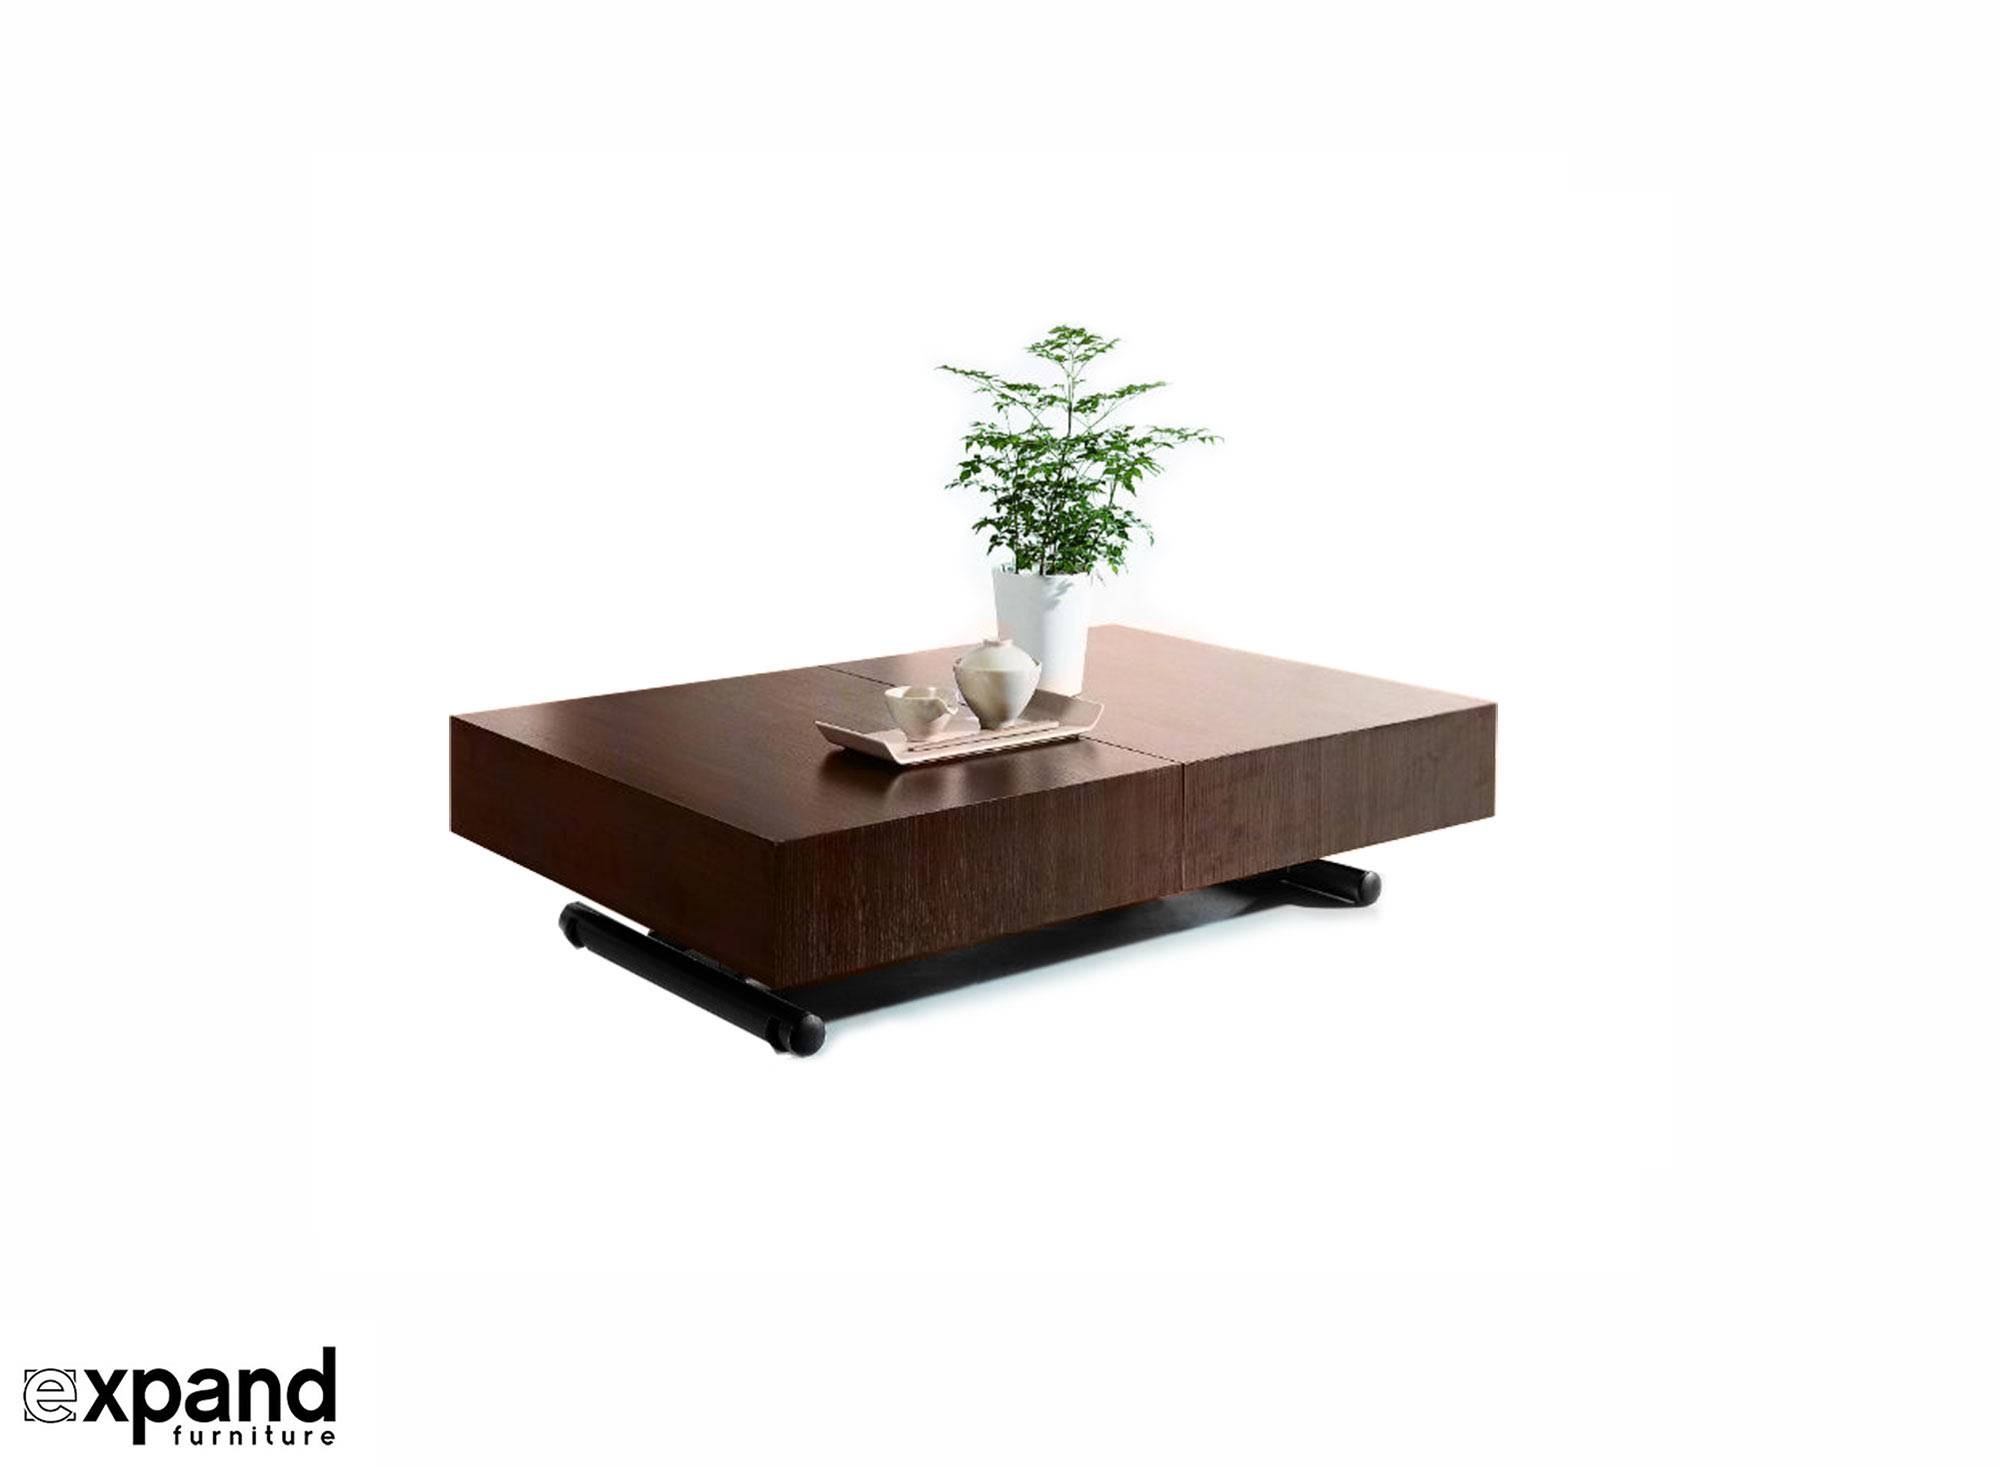 Transforming Box Coffee To Dining Table | Expand Furniture throughout Coffee Table Dining Table (Image 28 of 30)